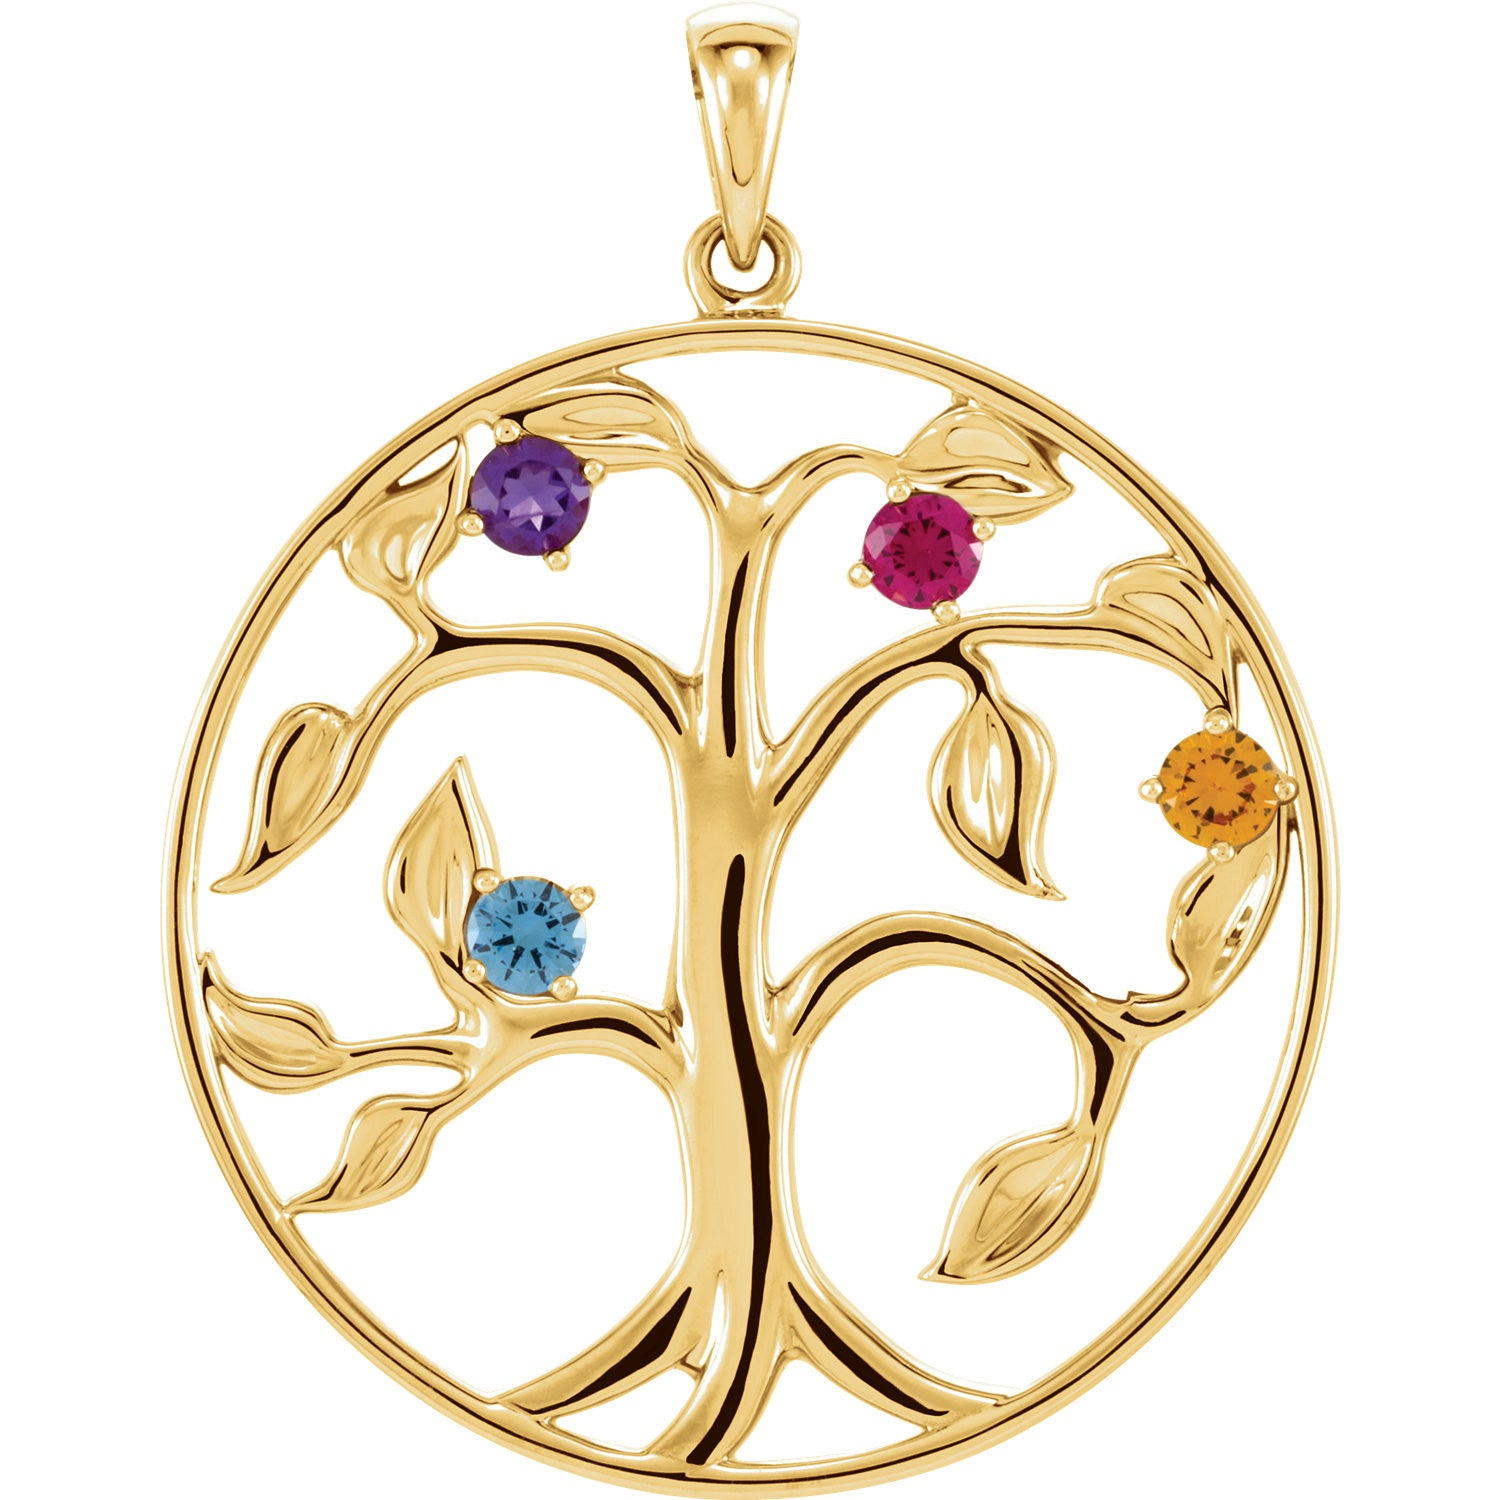 pelicano shop erin tree necklace pendant dsc family jewelry gold